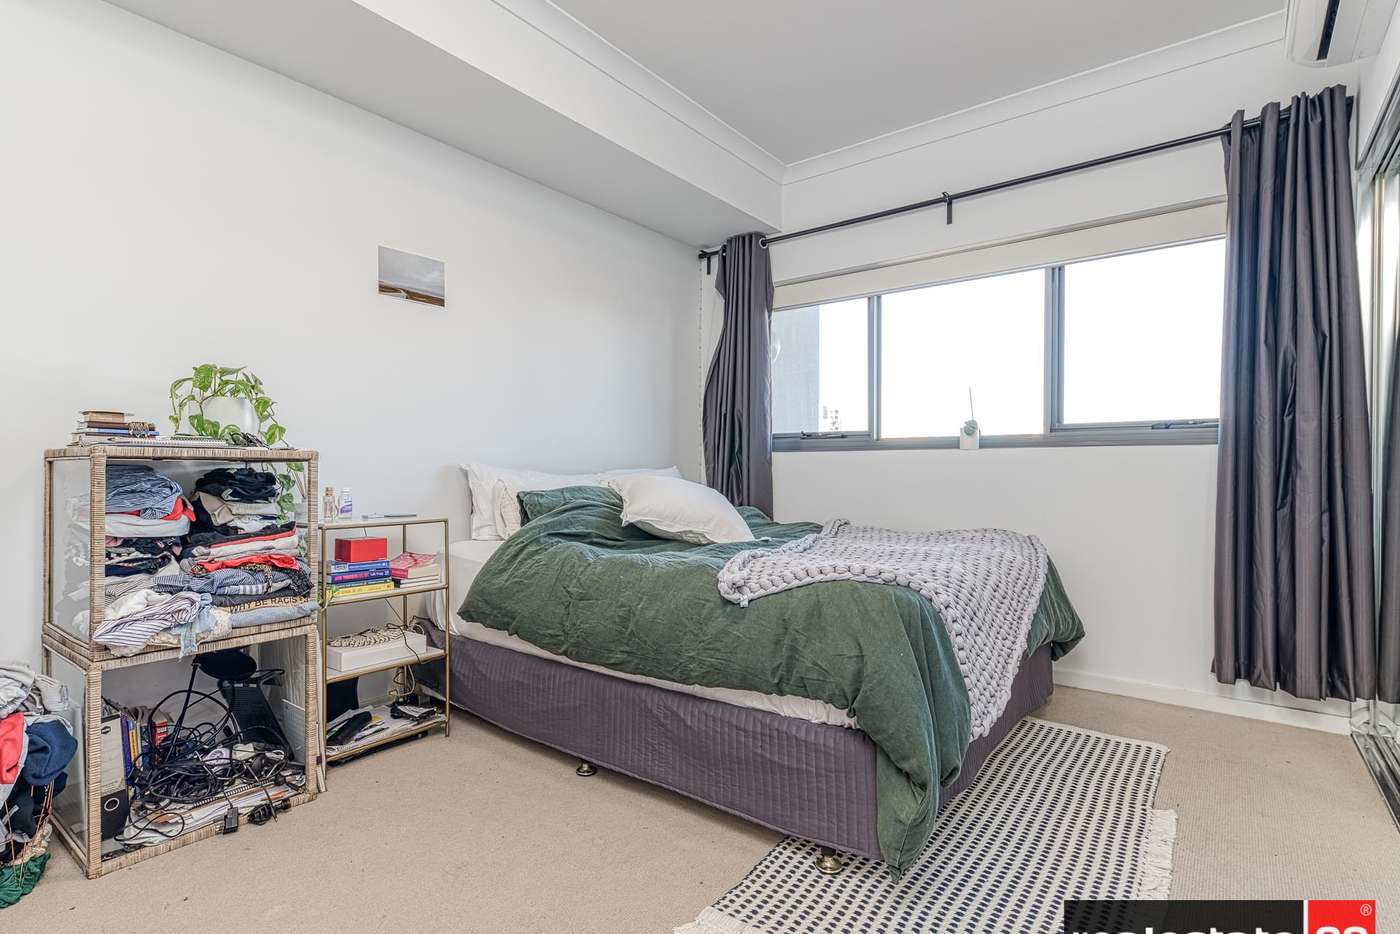 Seventh view of Homely apartment listing, 12/71 Brewer Street, Perth WA 6000